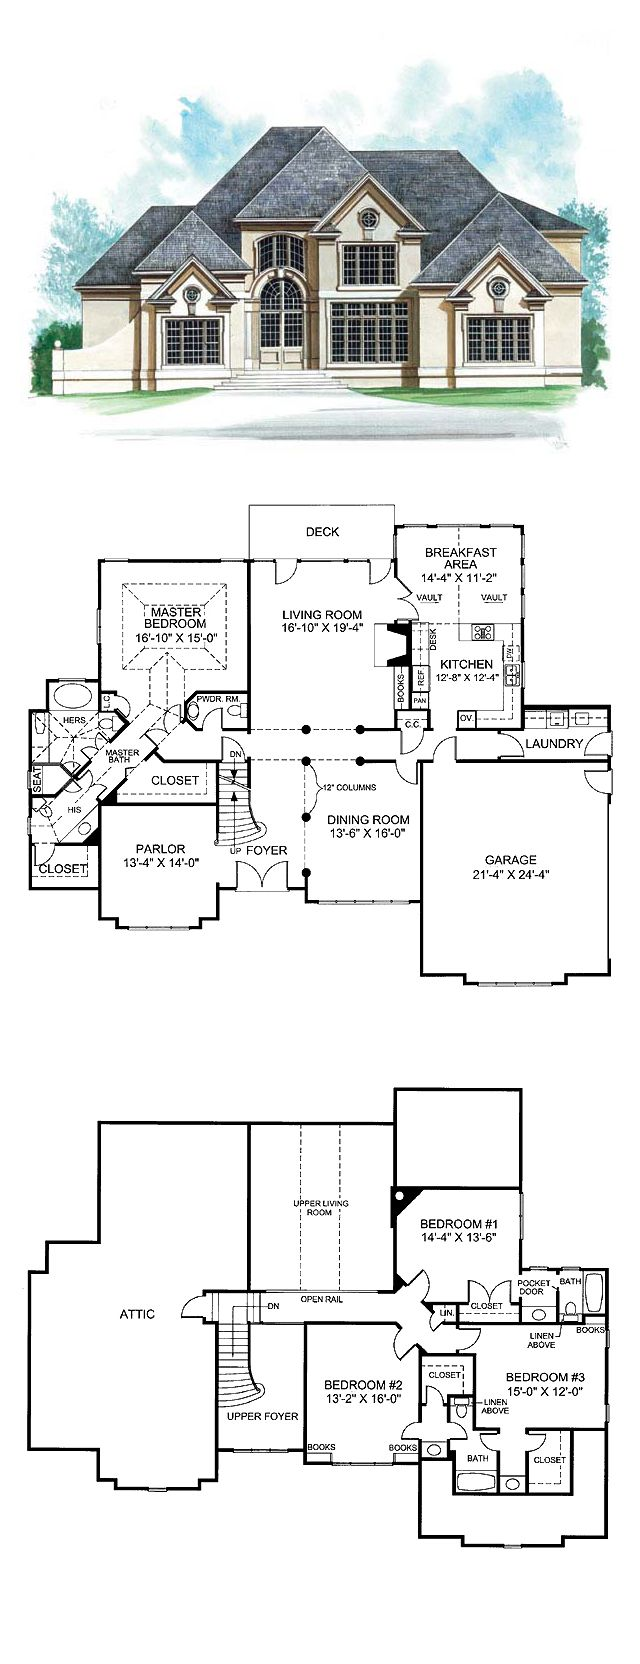 49 best Greek Revival House Plans images on Pinterest | Dream home Free House Floor Plans And Designs X on tree house designs, house plan your own designs, free online floor plans, free house graphic, free restaurant floor plans, free house plans south africa, 3d house plans designs, free downloadable house plans, free virtual floor plan designer, free printable bird house plans, free house plans in ghana, free printable furniture templates, african house plans and designs, simple floor plan designs, free building plans, floor plans small home designs, free greenhouse plans, open floor plan designs, free home plans, free tiny house plans,